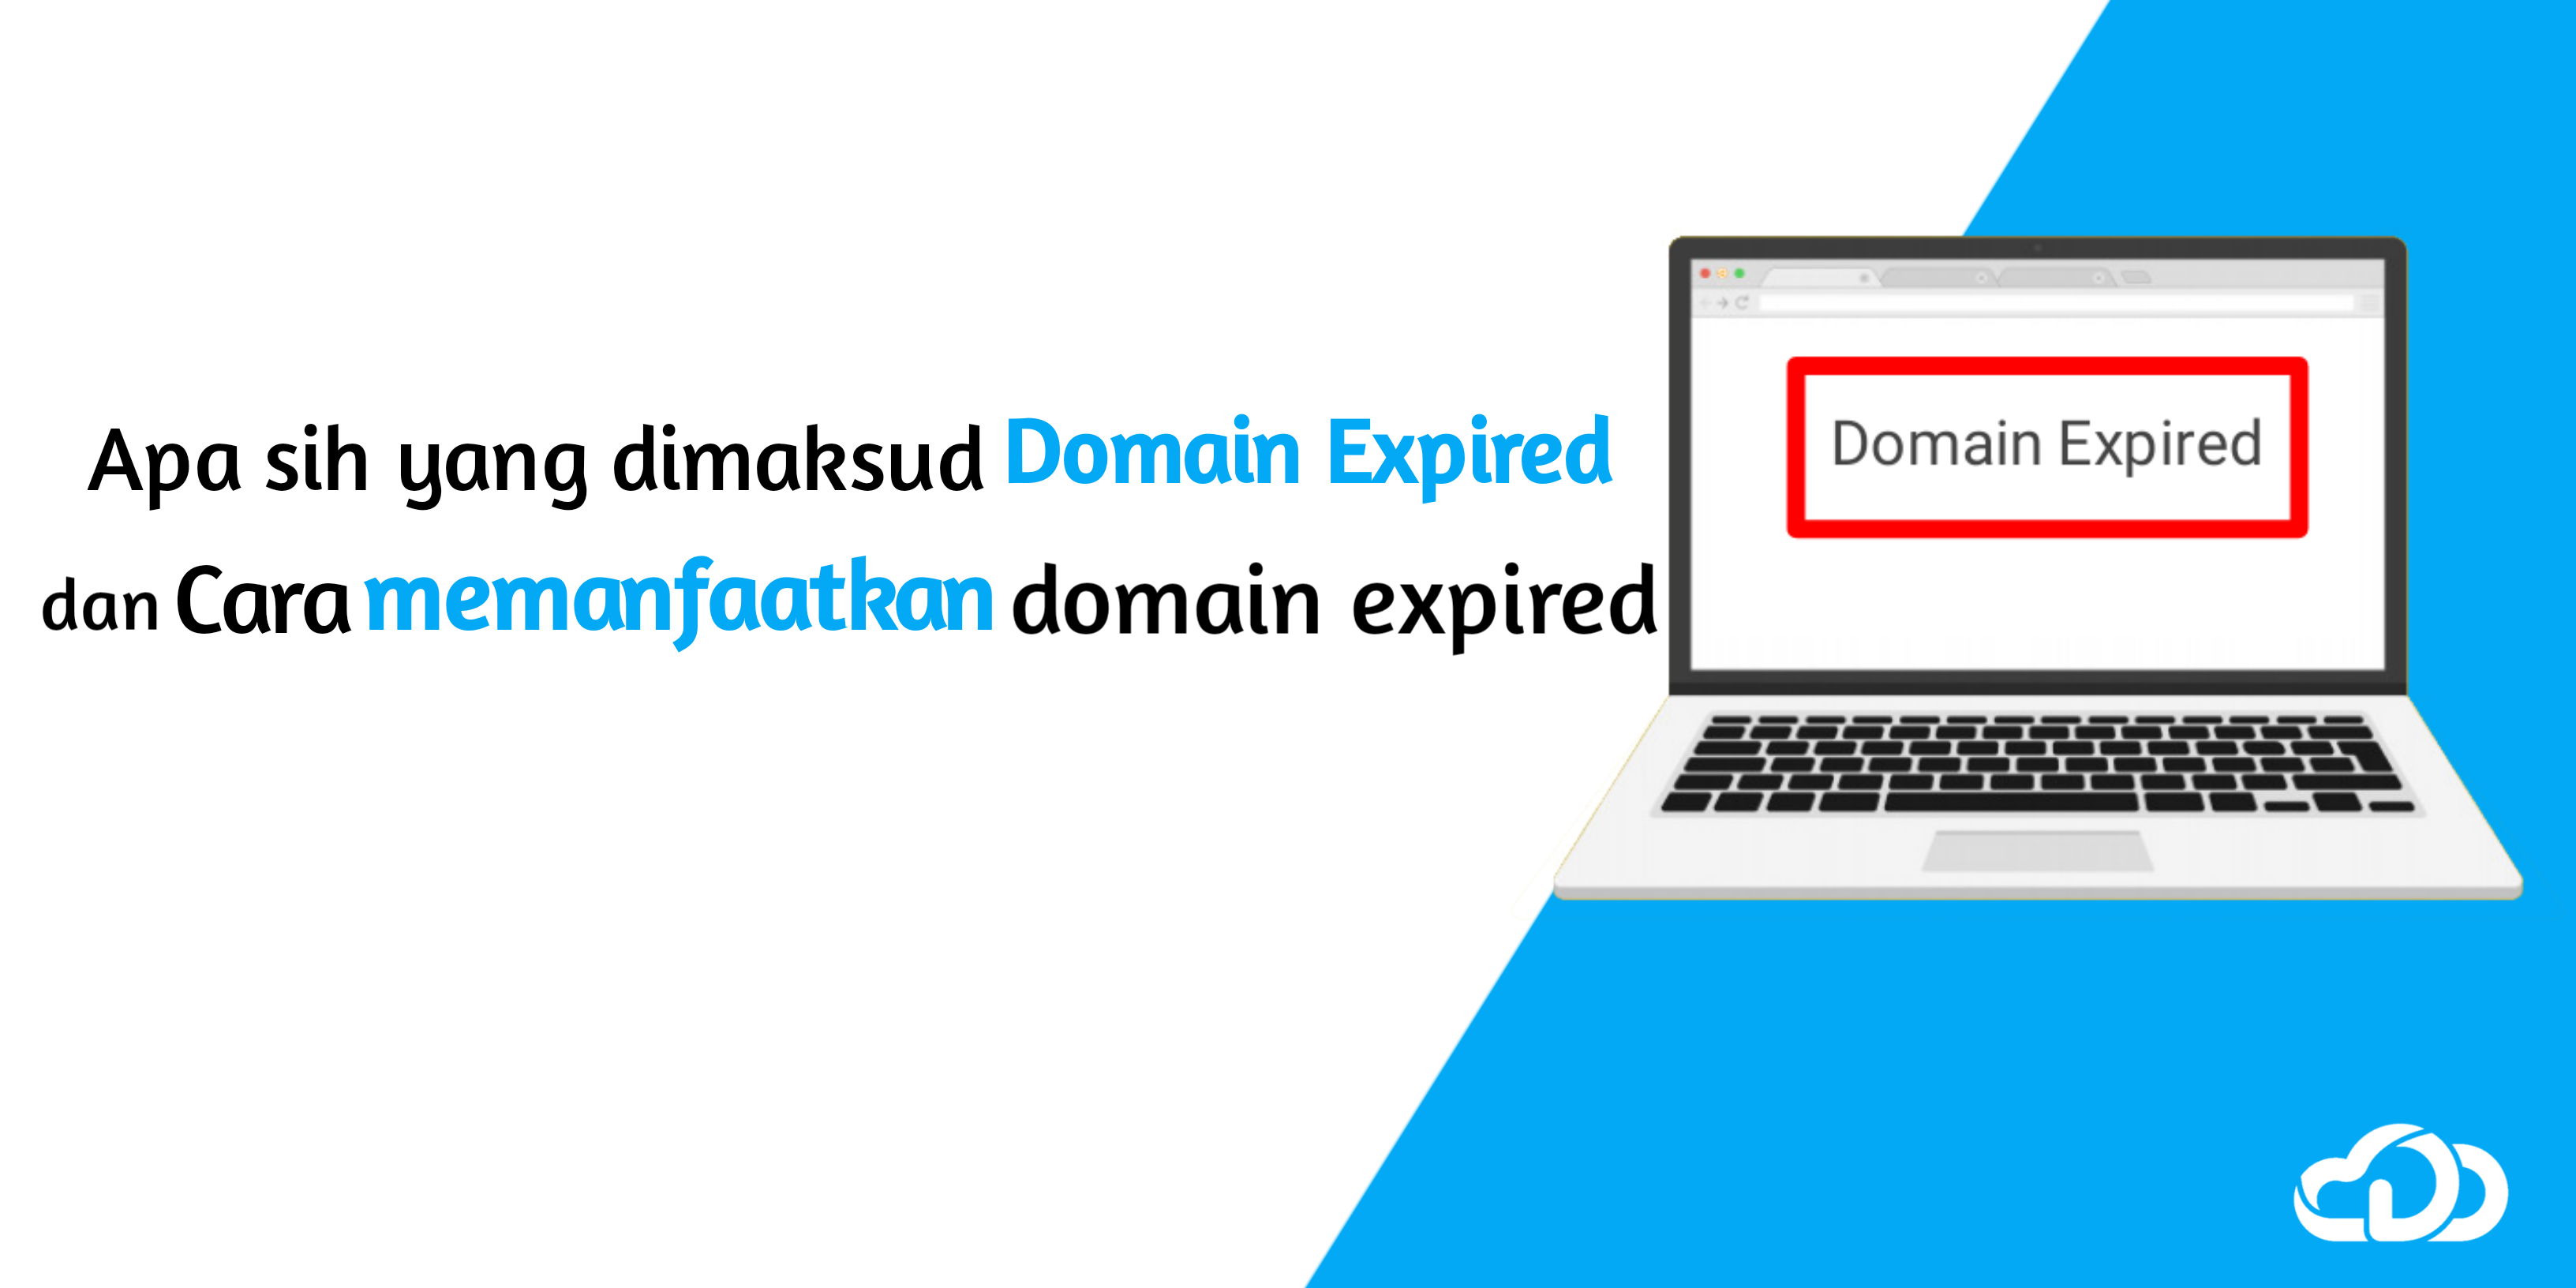 Penjelasan Expired Domain